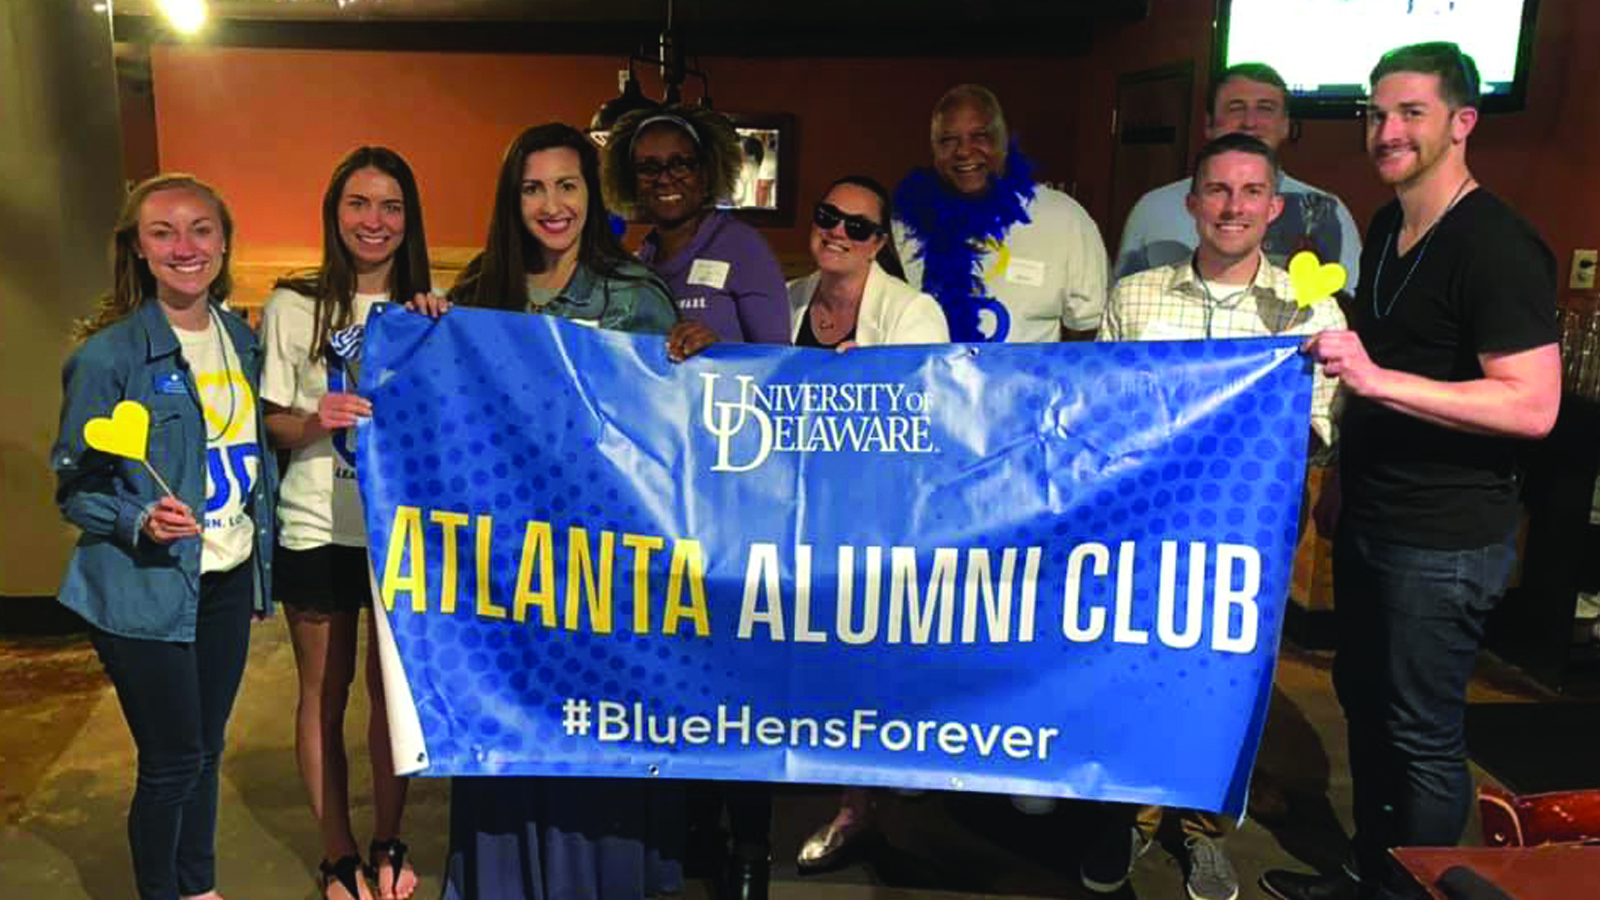 University of Delaware regional alumni events with the Atlanta Alumni Club